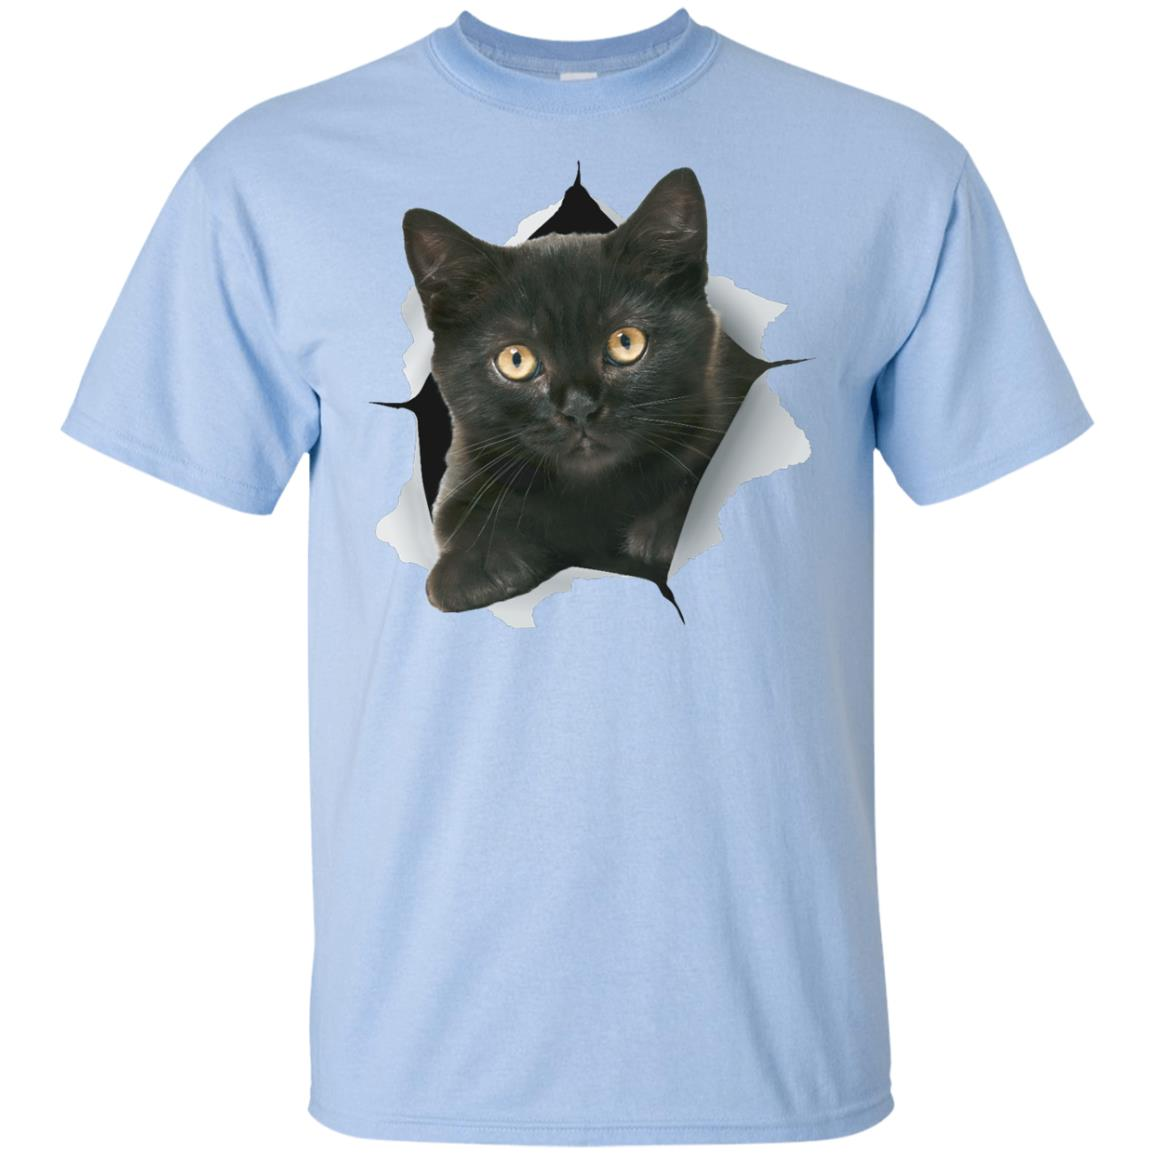 Black Kitten Youth Cotton T-Shirt